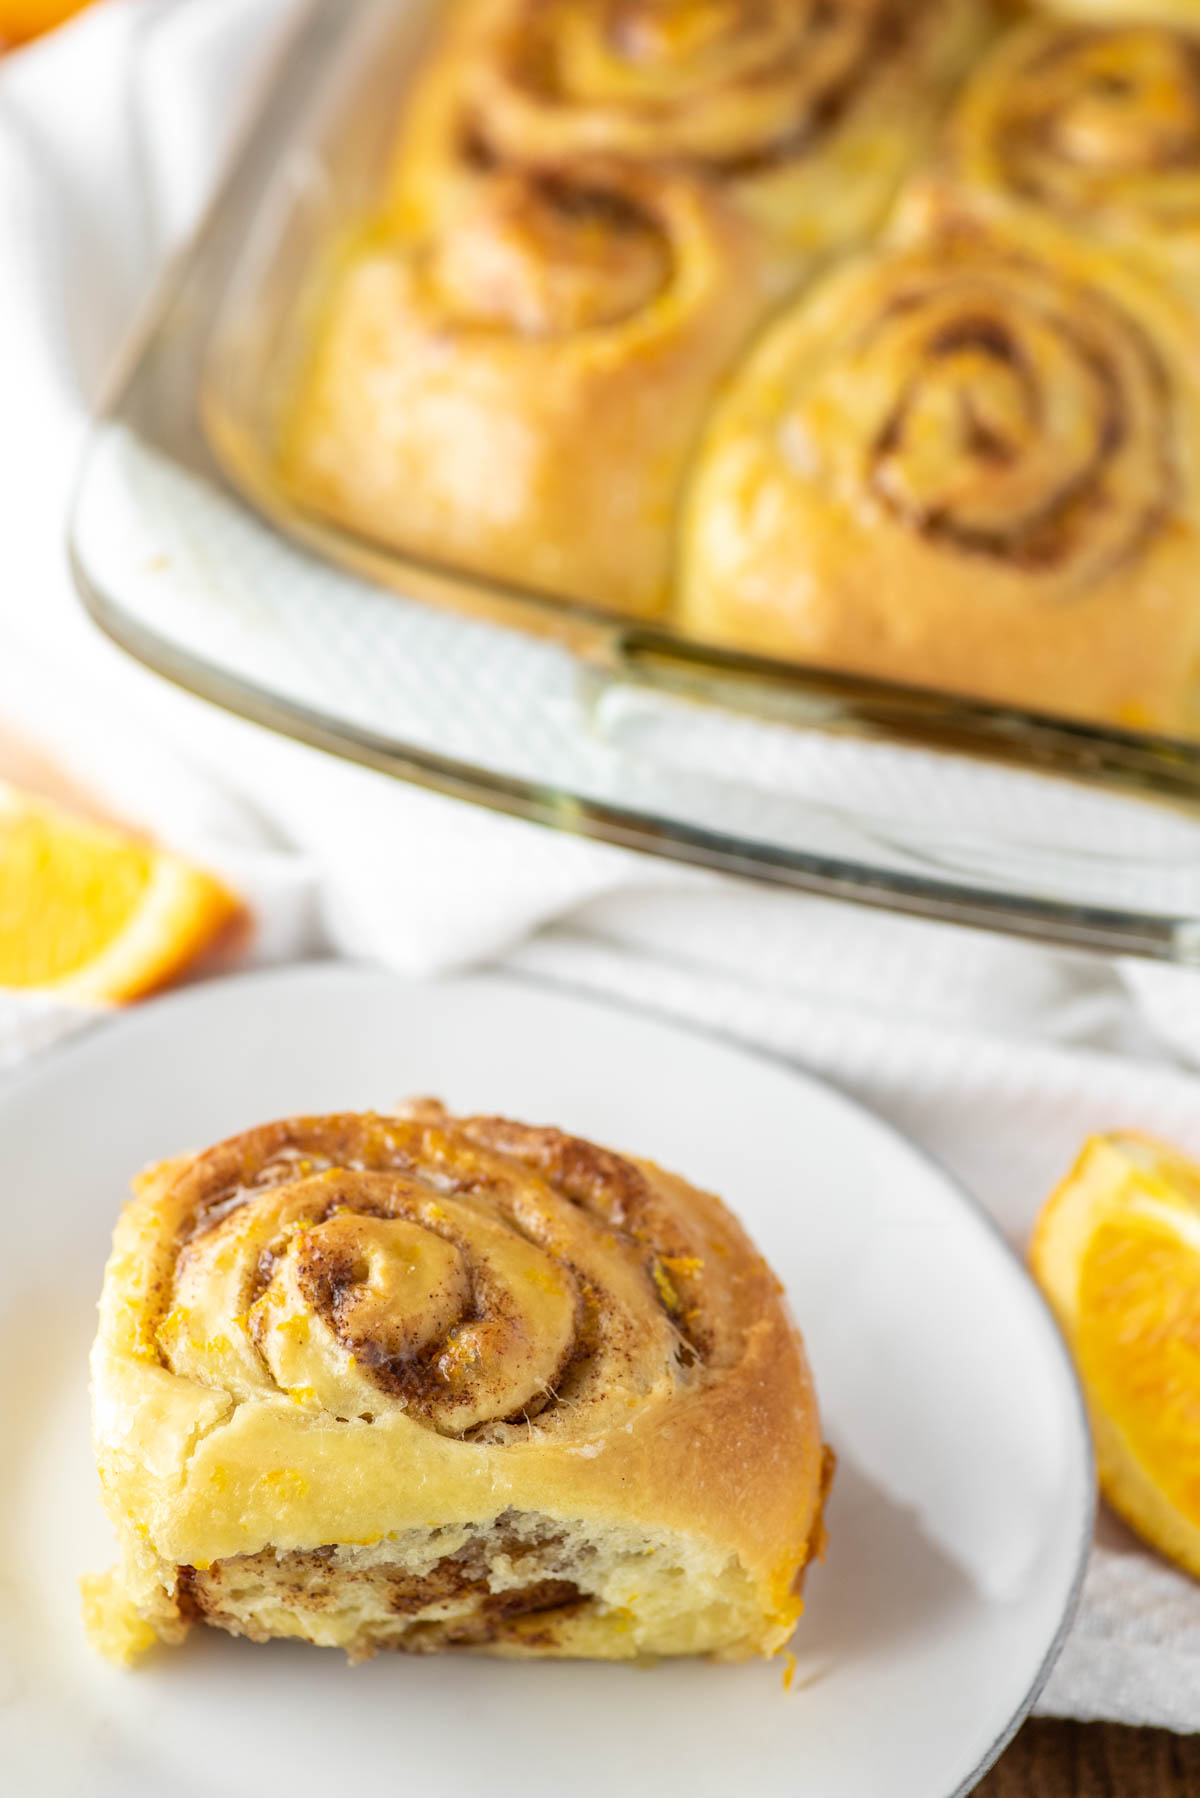 orange roll on white plate with rolls in baking dish in background